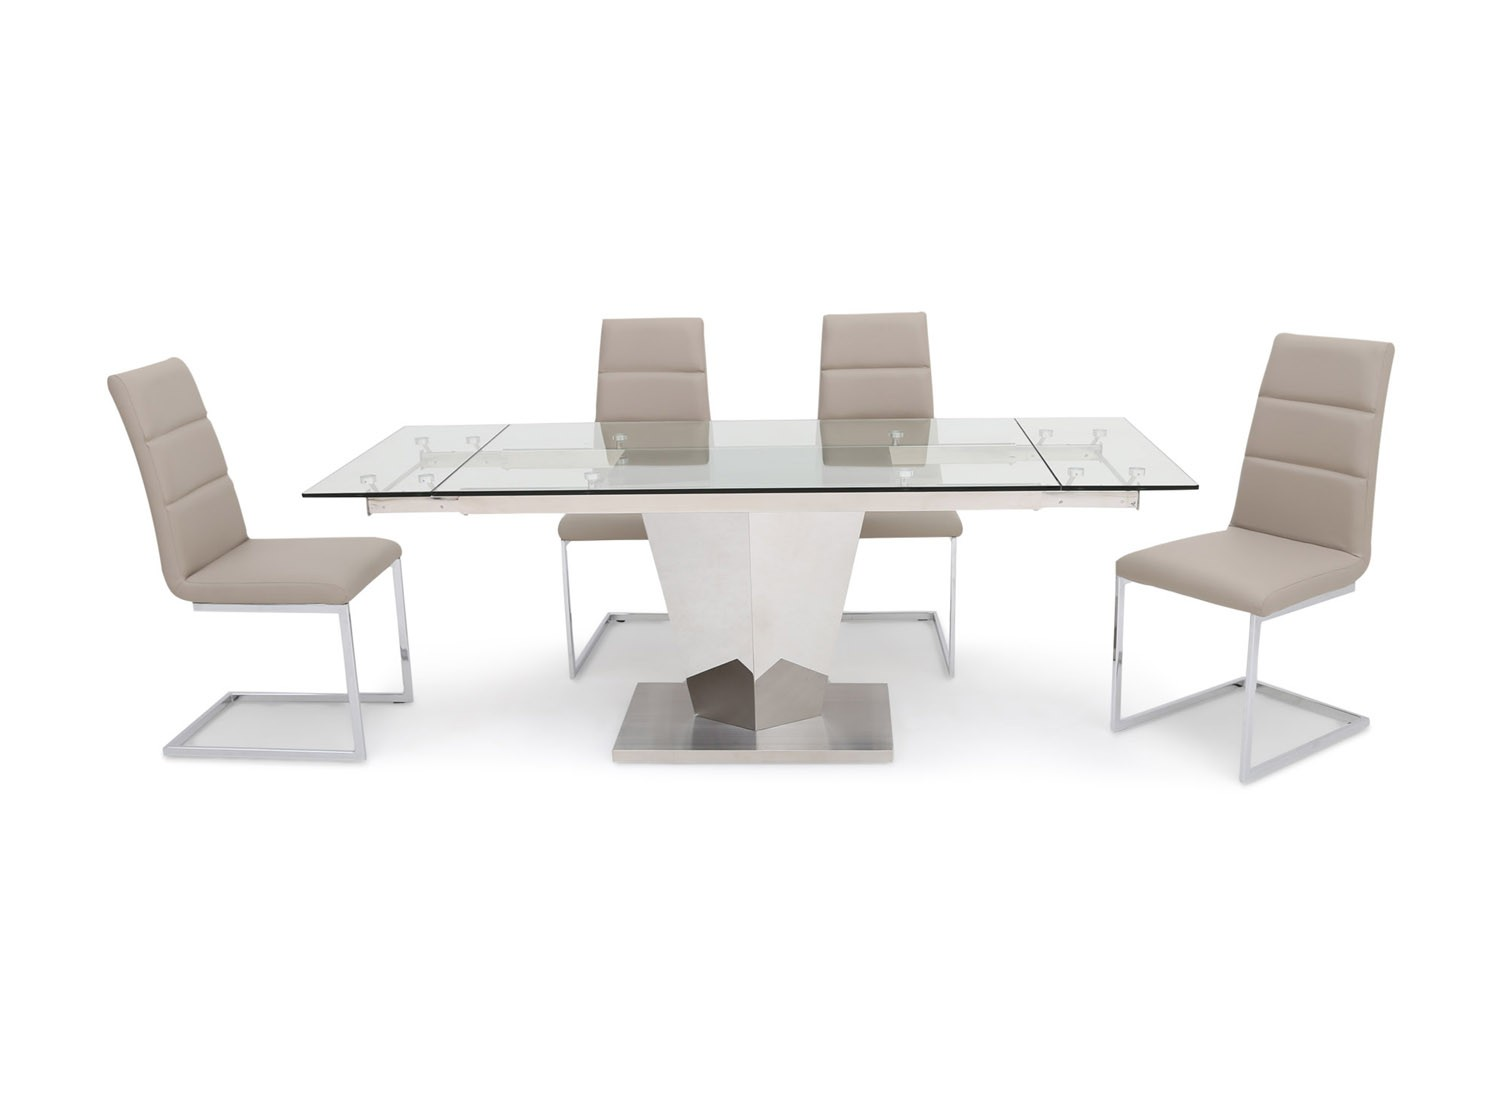 https://www.firstfurniture.co.uk/pub/media/catalog/product/i/s/isabella_dining_table_zara_chair_taupe_open_3.jpg